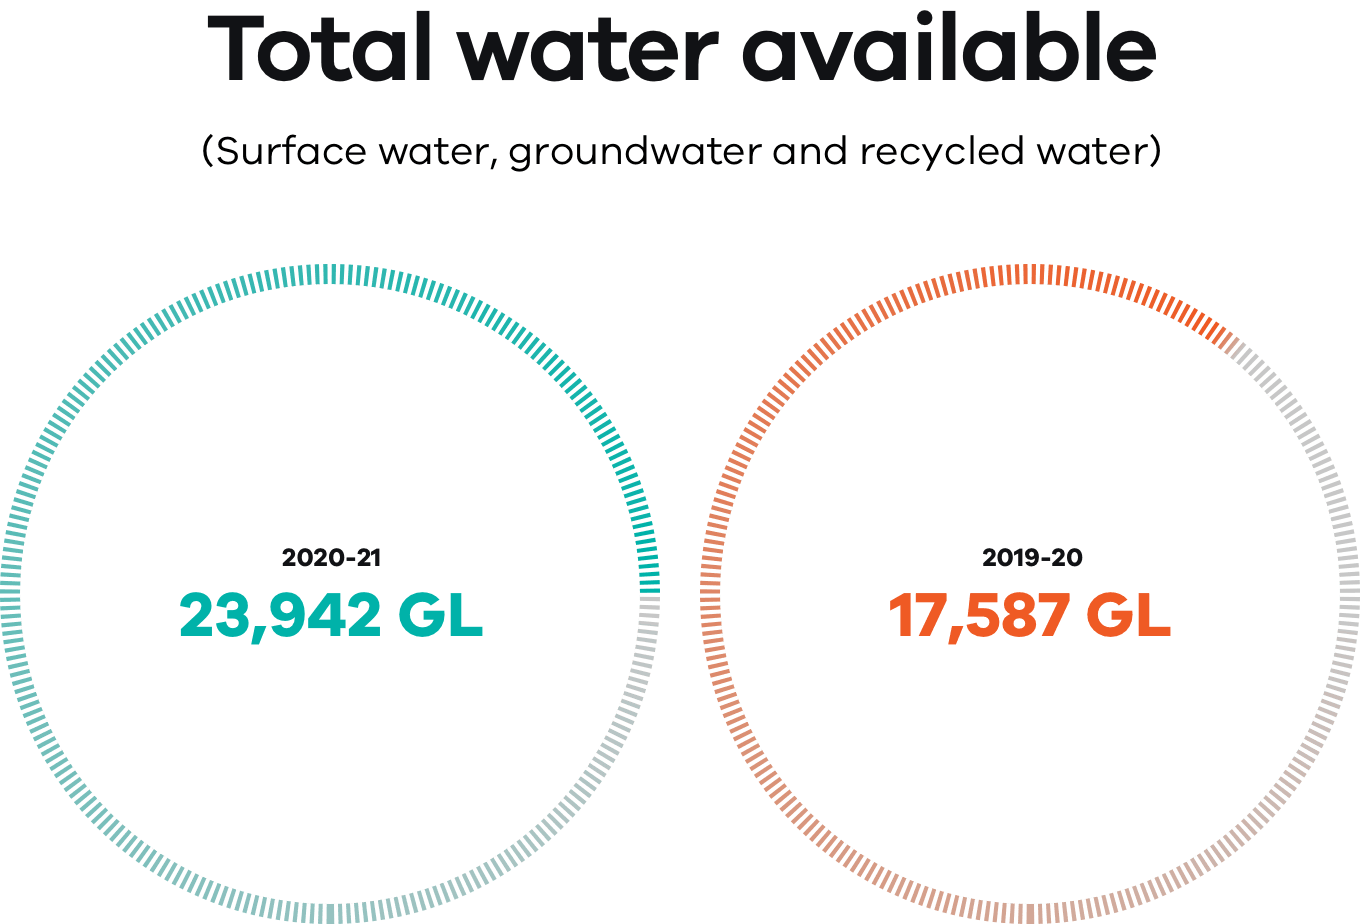 Graph of the total water available